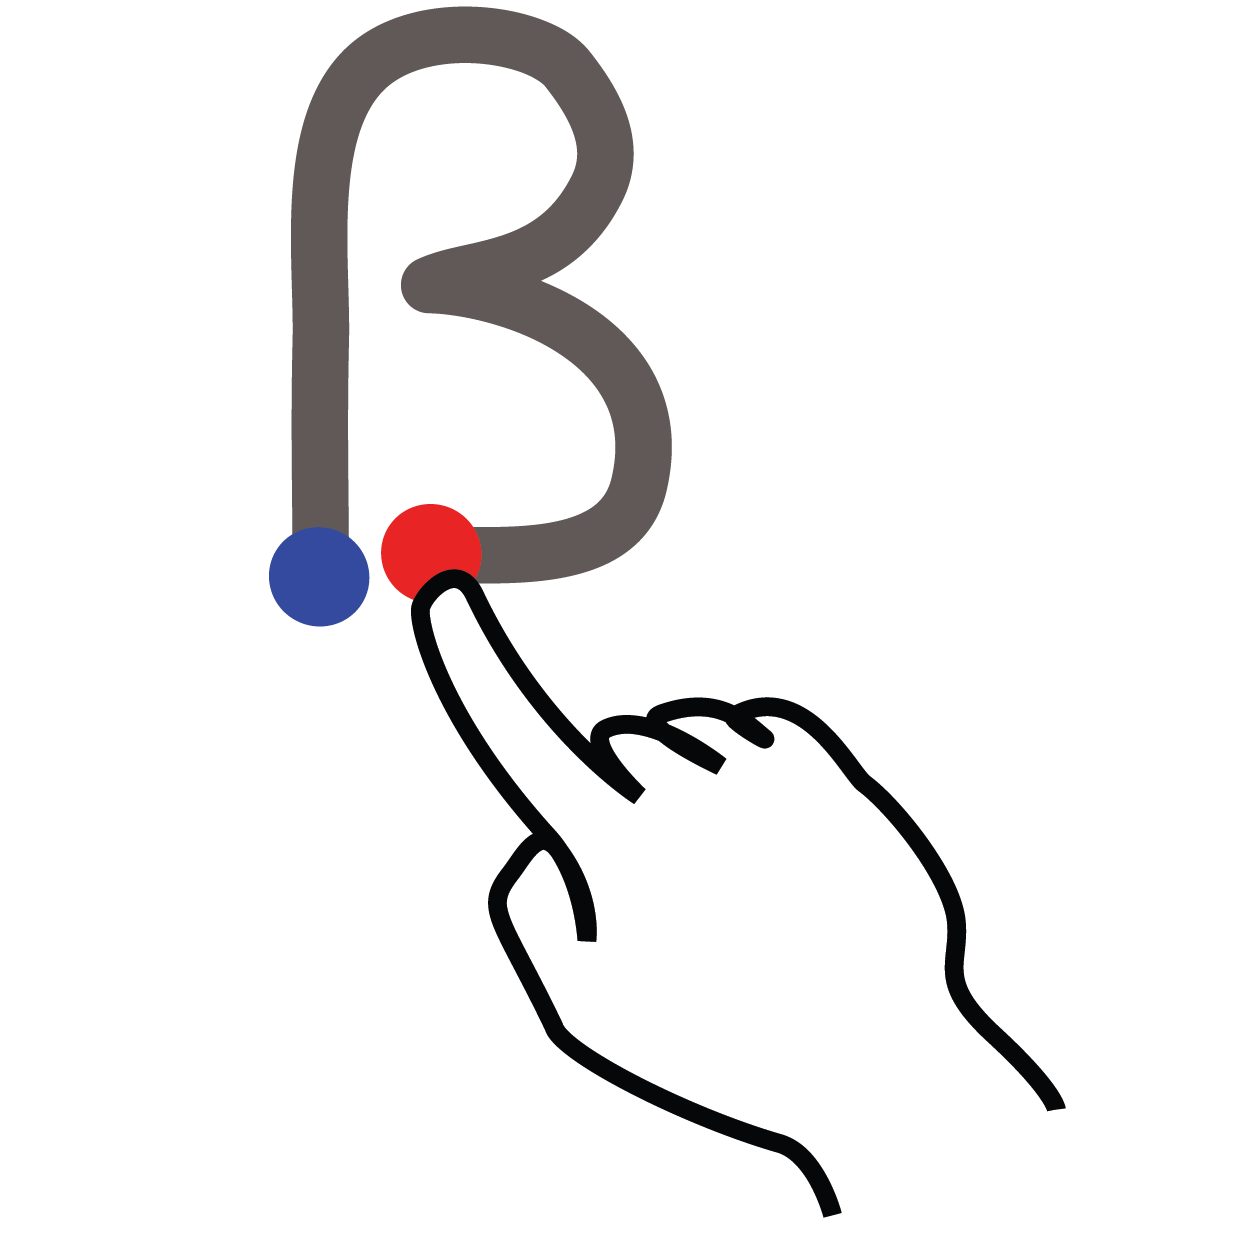 gestures:touch:simple:geometric:path-based:stroke_letter_b_uppercase_gestureworks.png